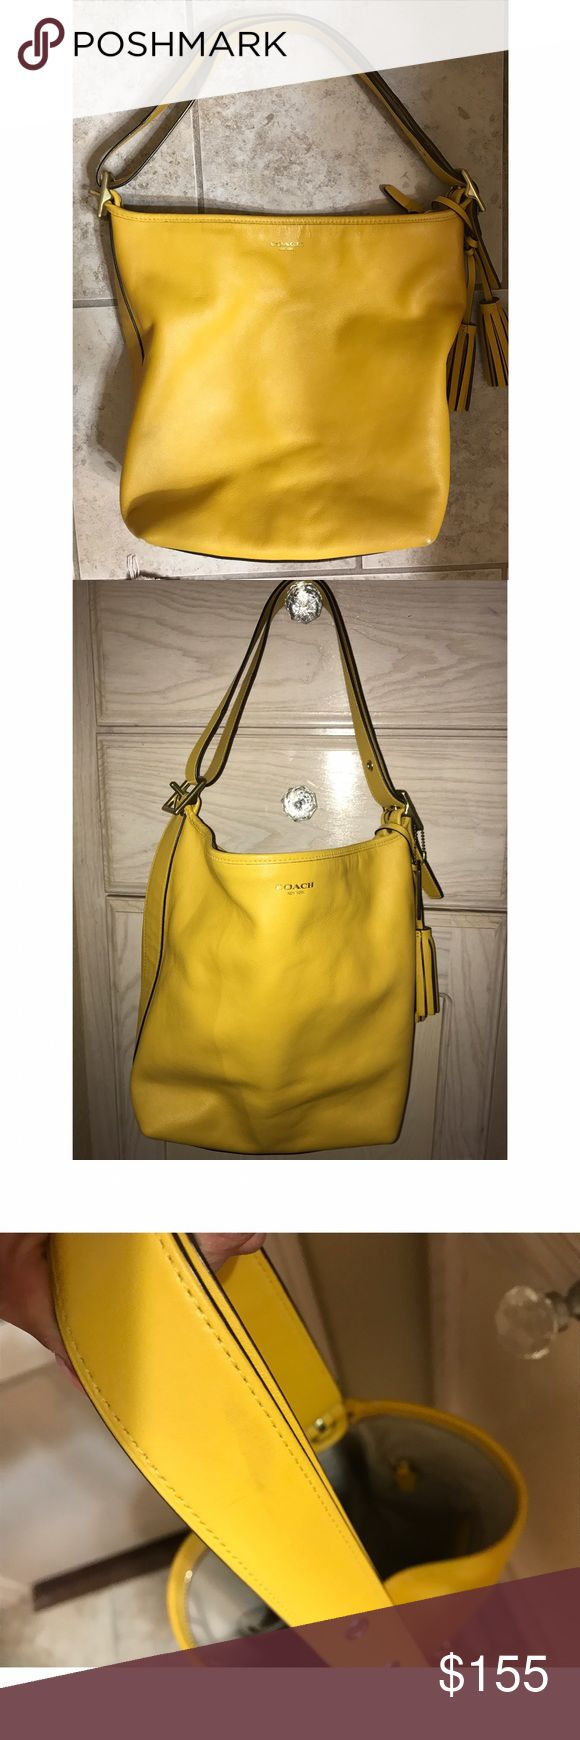 Coach Legacy Sunflower purse Coach legacy bag in sunflower lightly used only very minimal visible marking on strap other than that inside is completely clean still have care card... no dustbag but in great overall condition Coach Bags Shoulder Bags